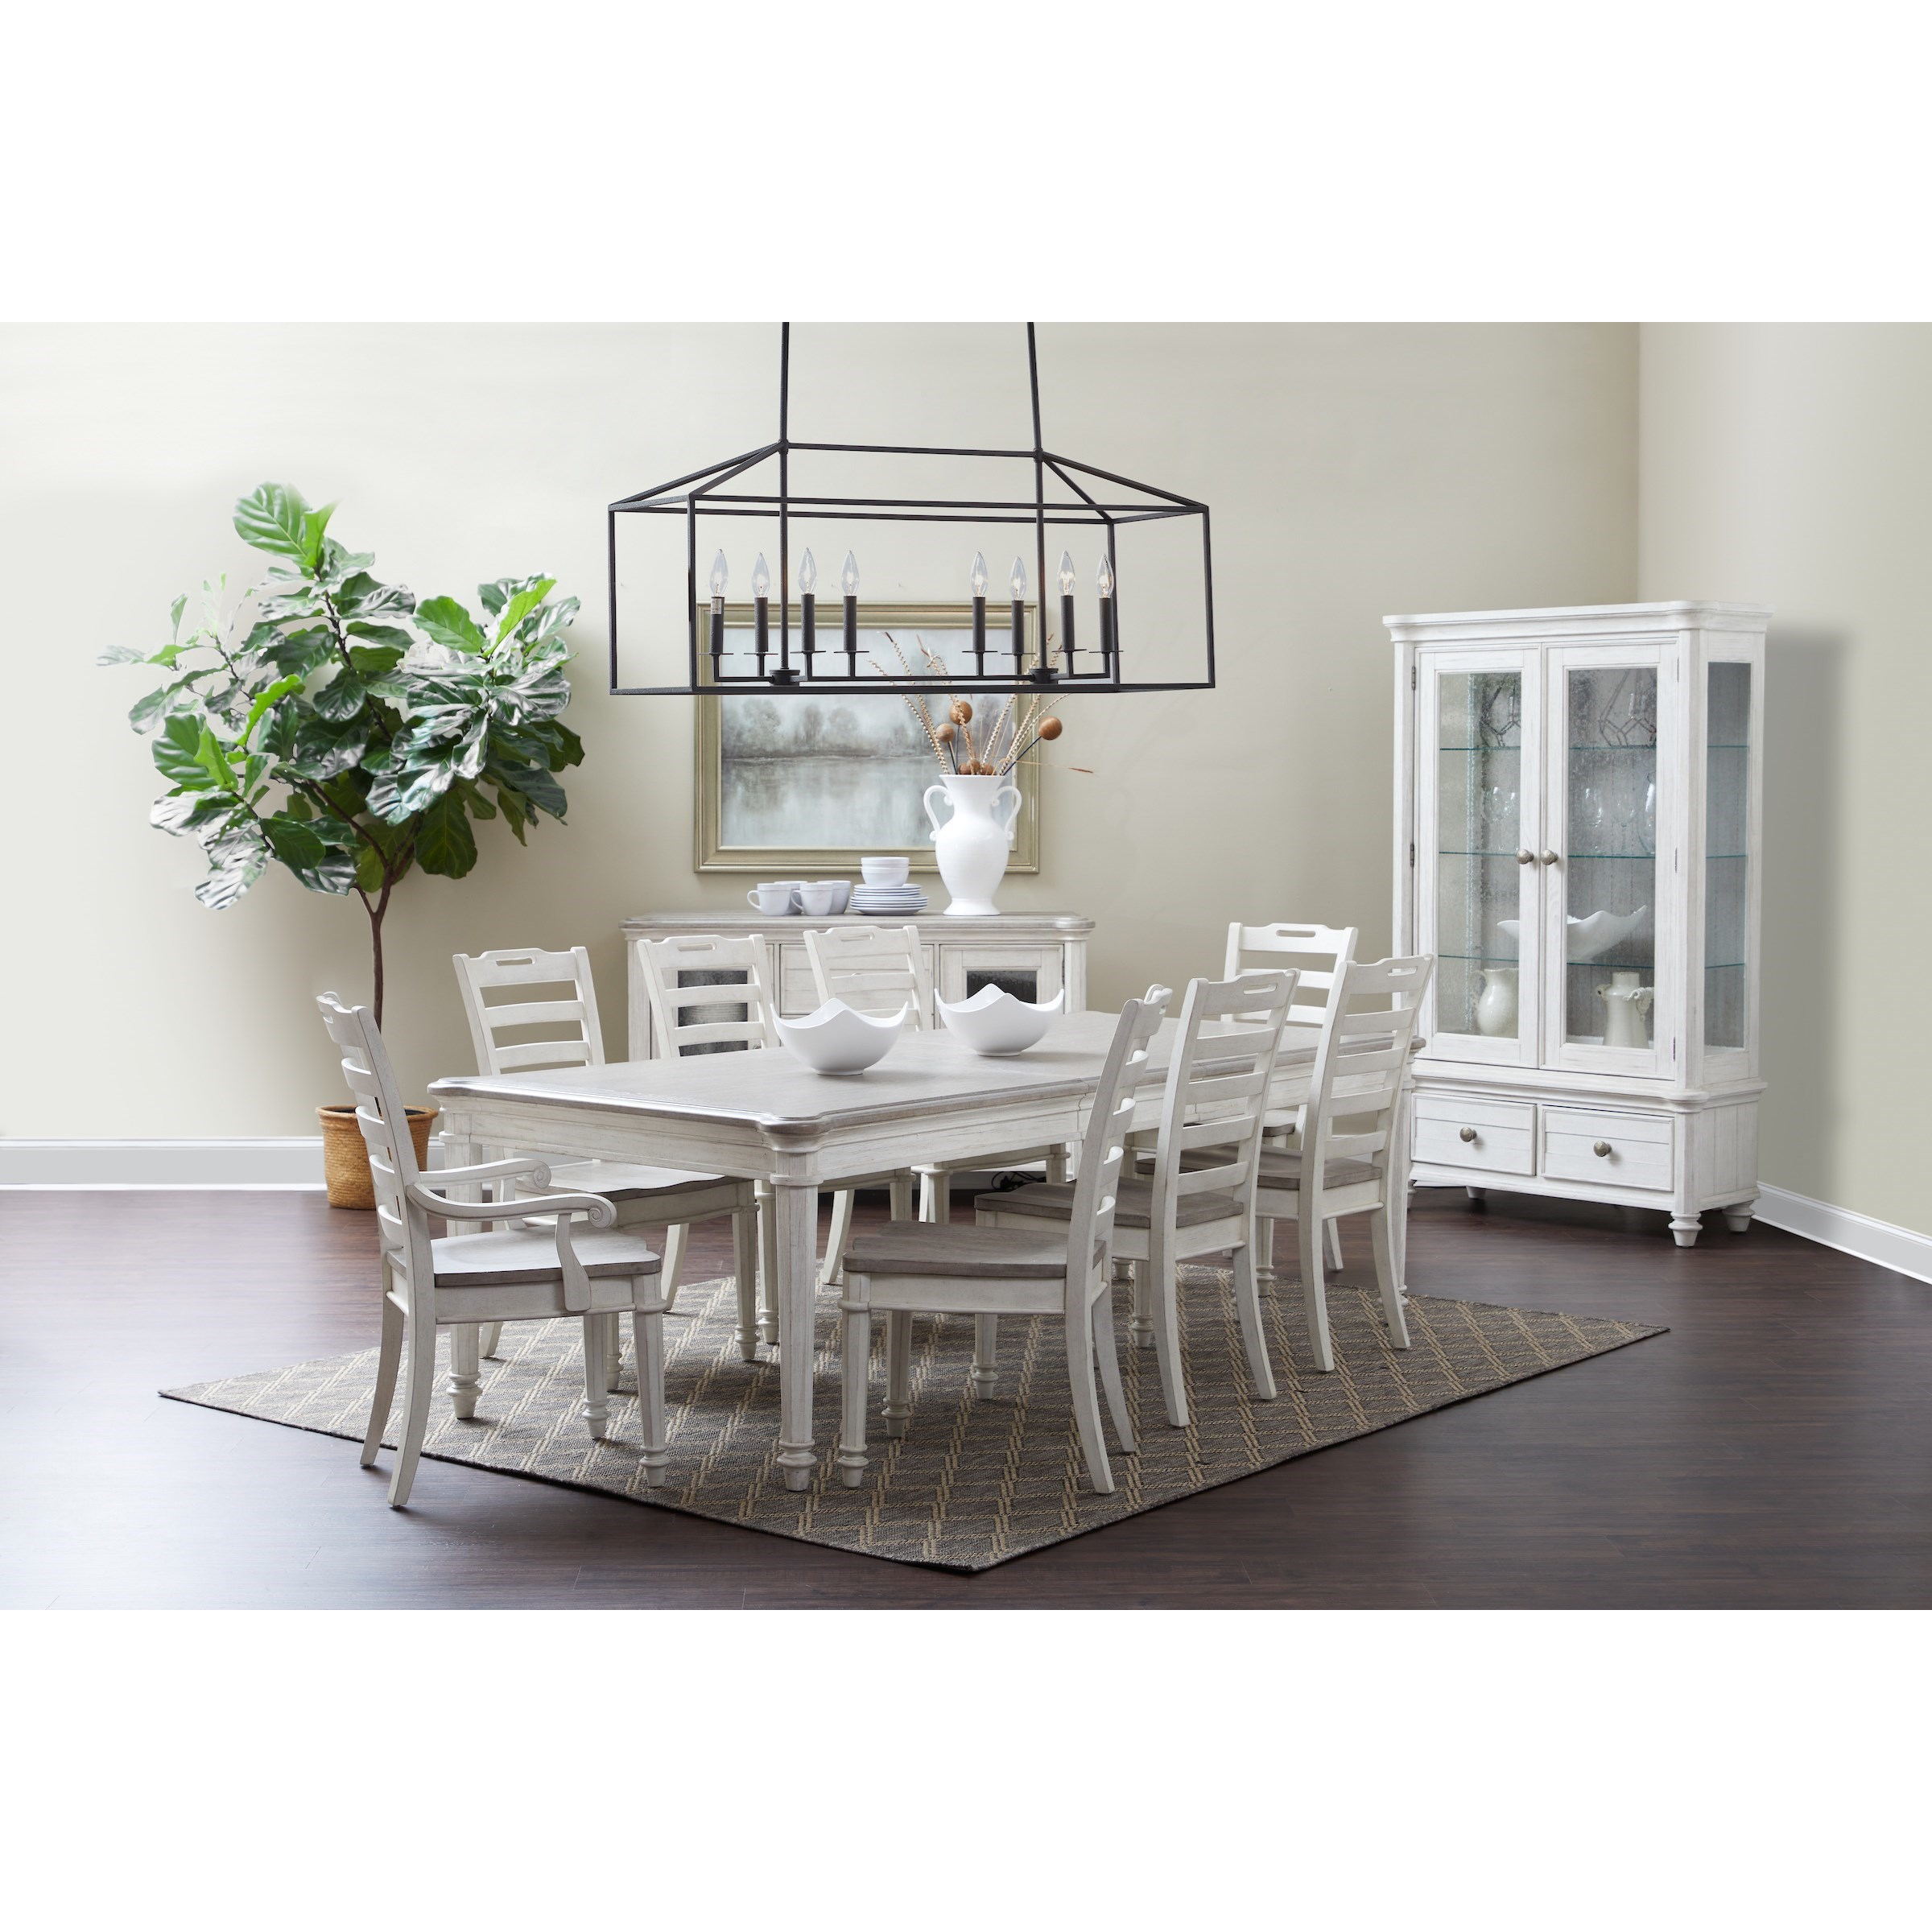 Maribelle Formal Dining Room Group by Klaussner International at Catalog Outlet